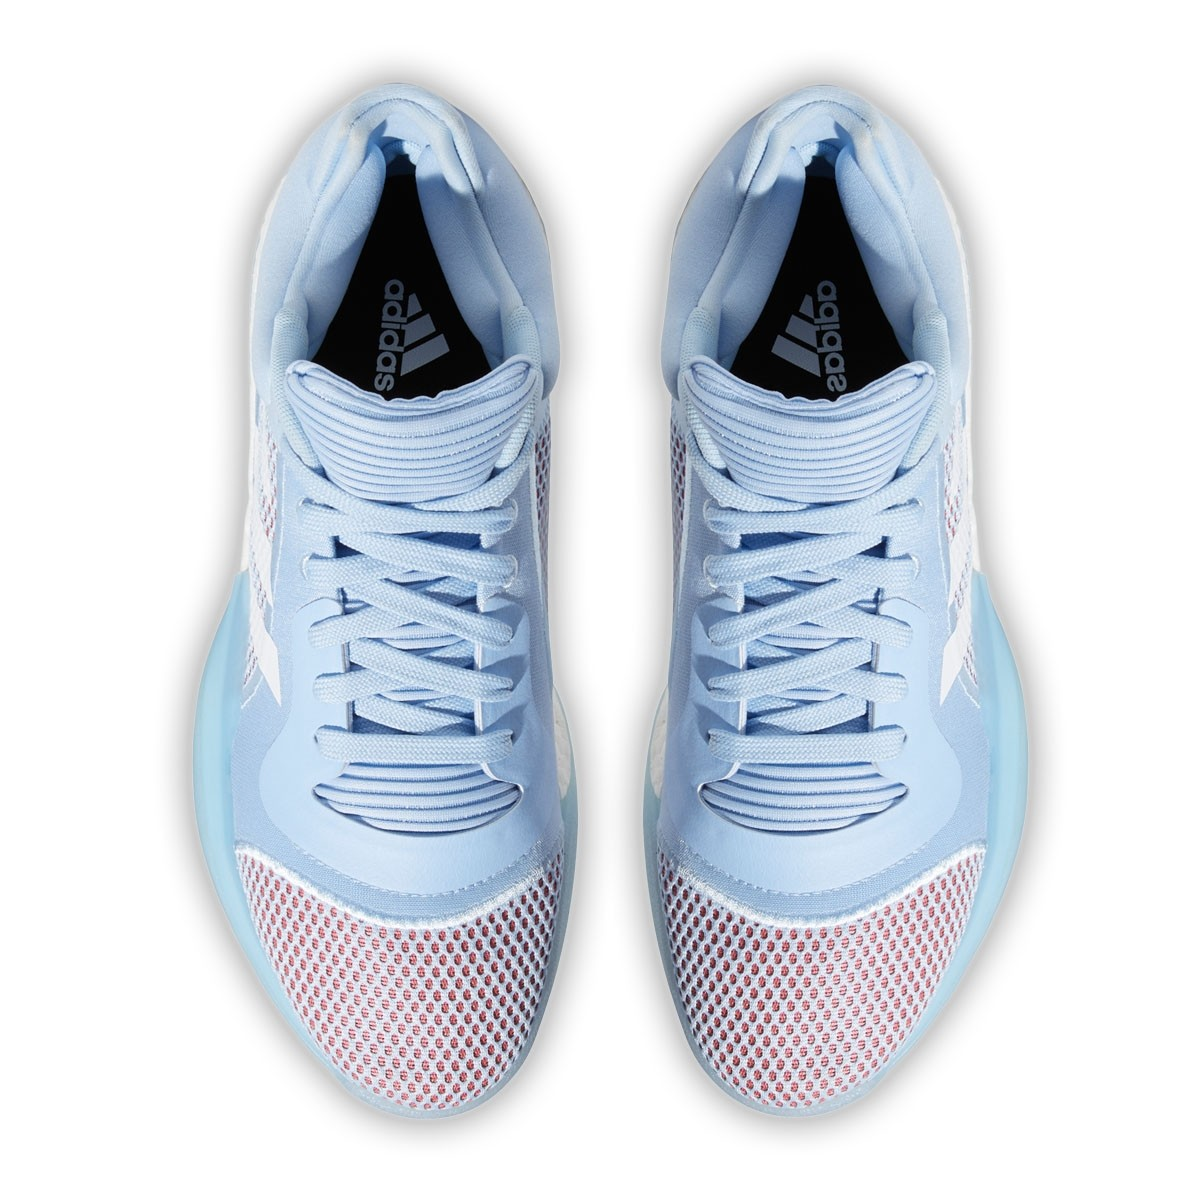 ADIDAS Marquee Boost Low 'Glow Blue' G26215